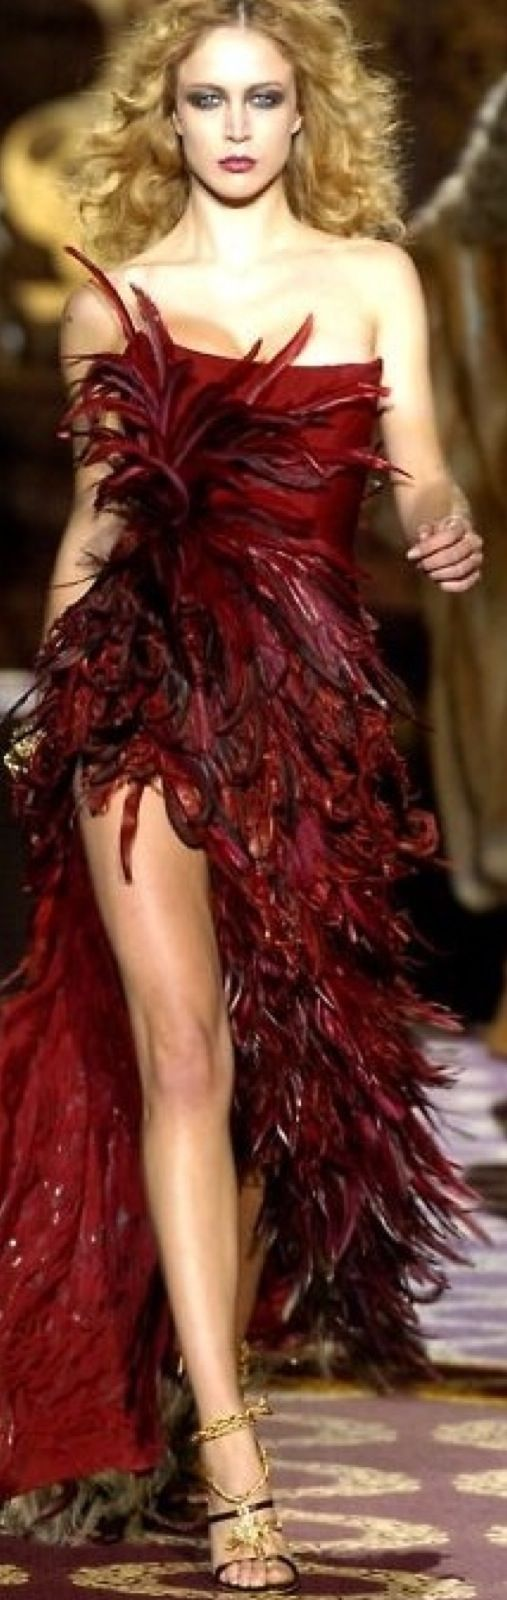 Zuhair Murad - 2004/2005 - dark red feathered gown. Autumn fire ...